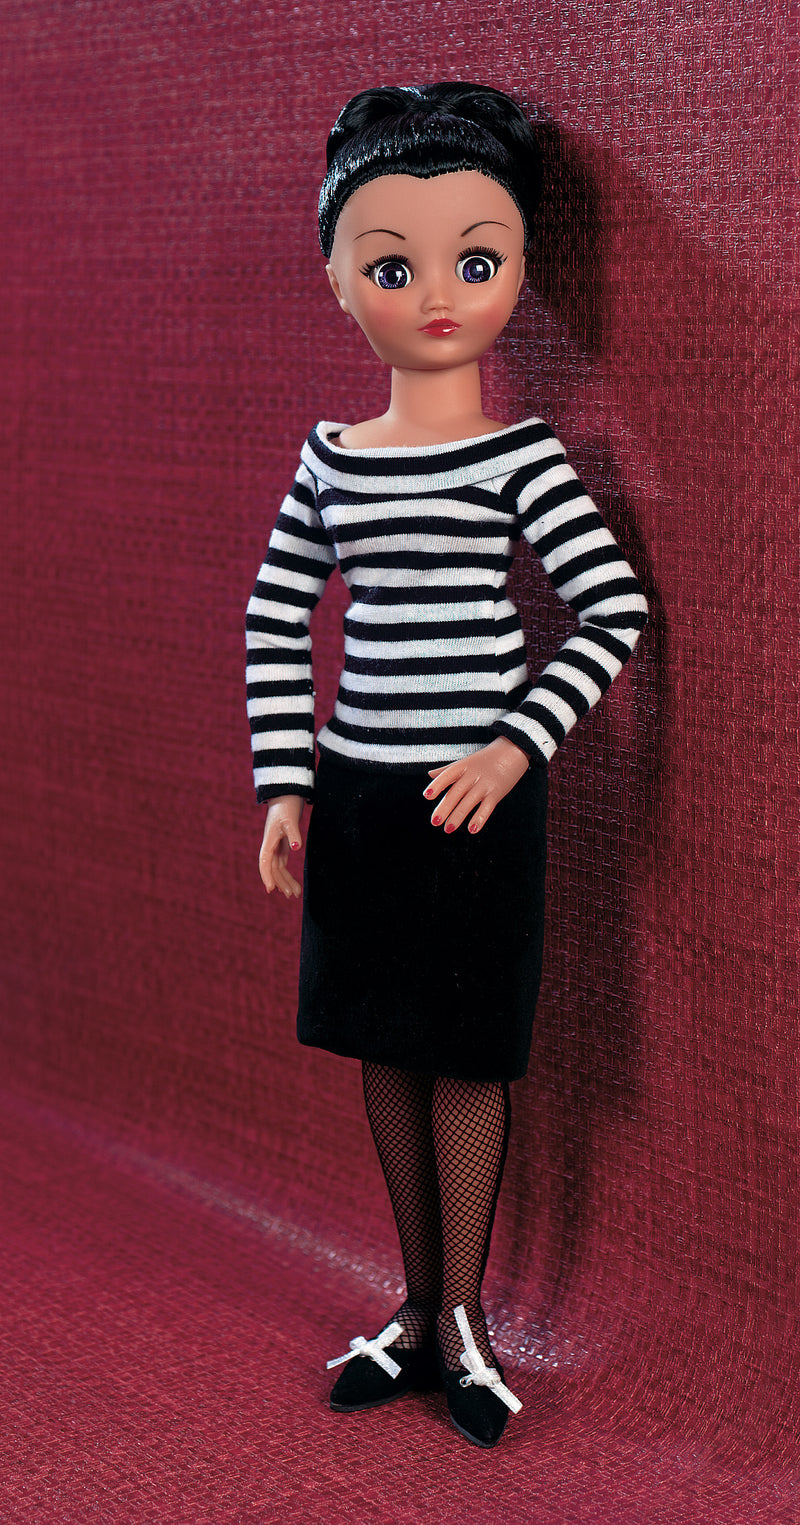 Shopping Spree Doll by Horsman